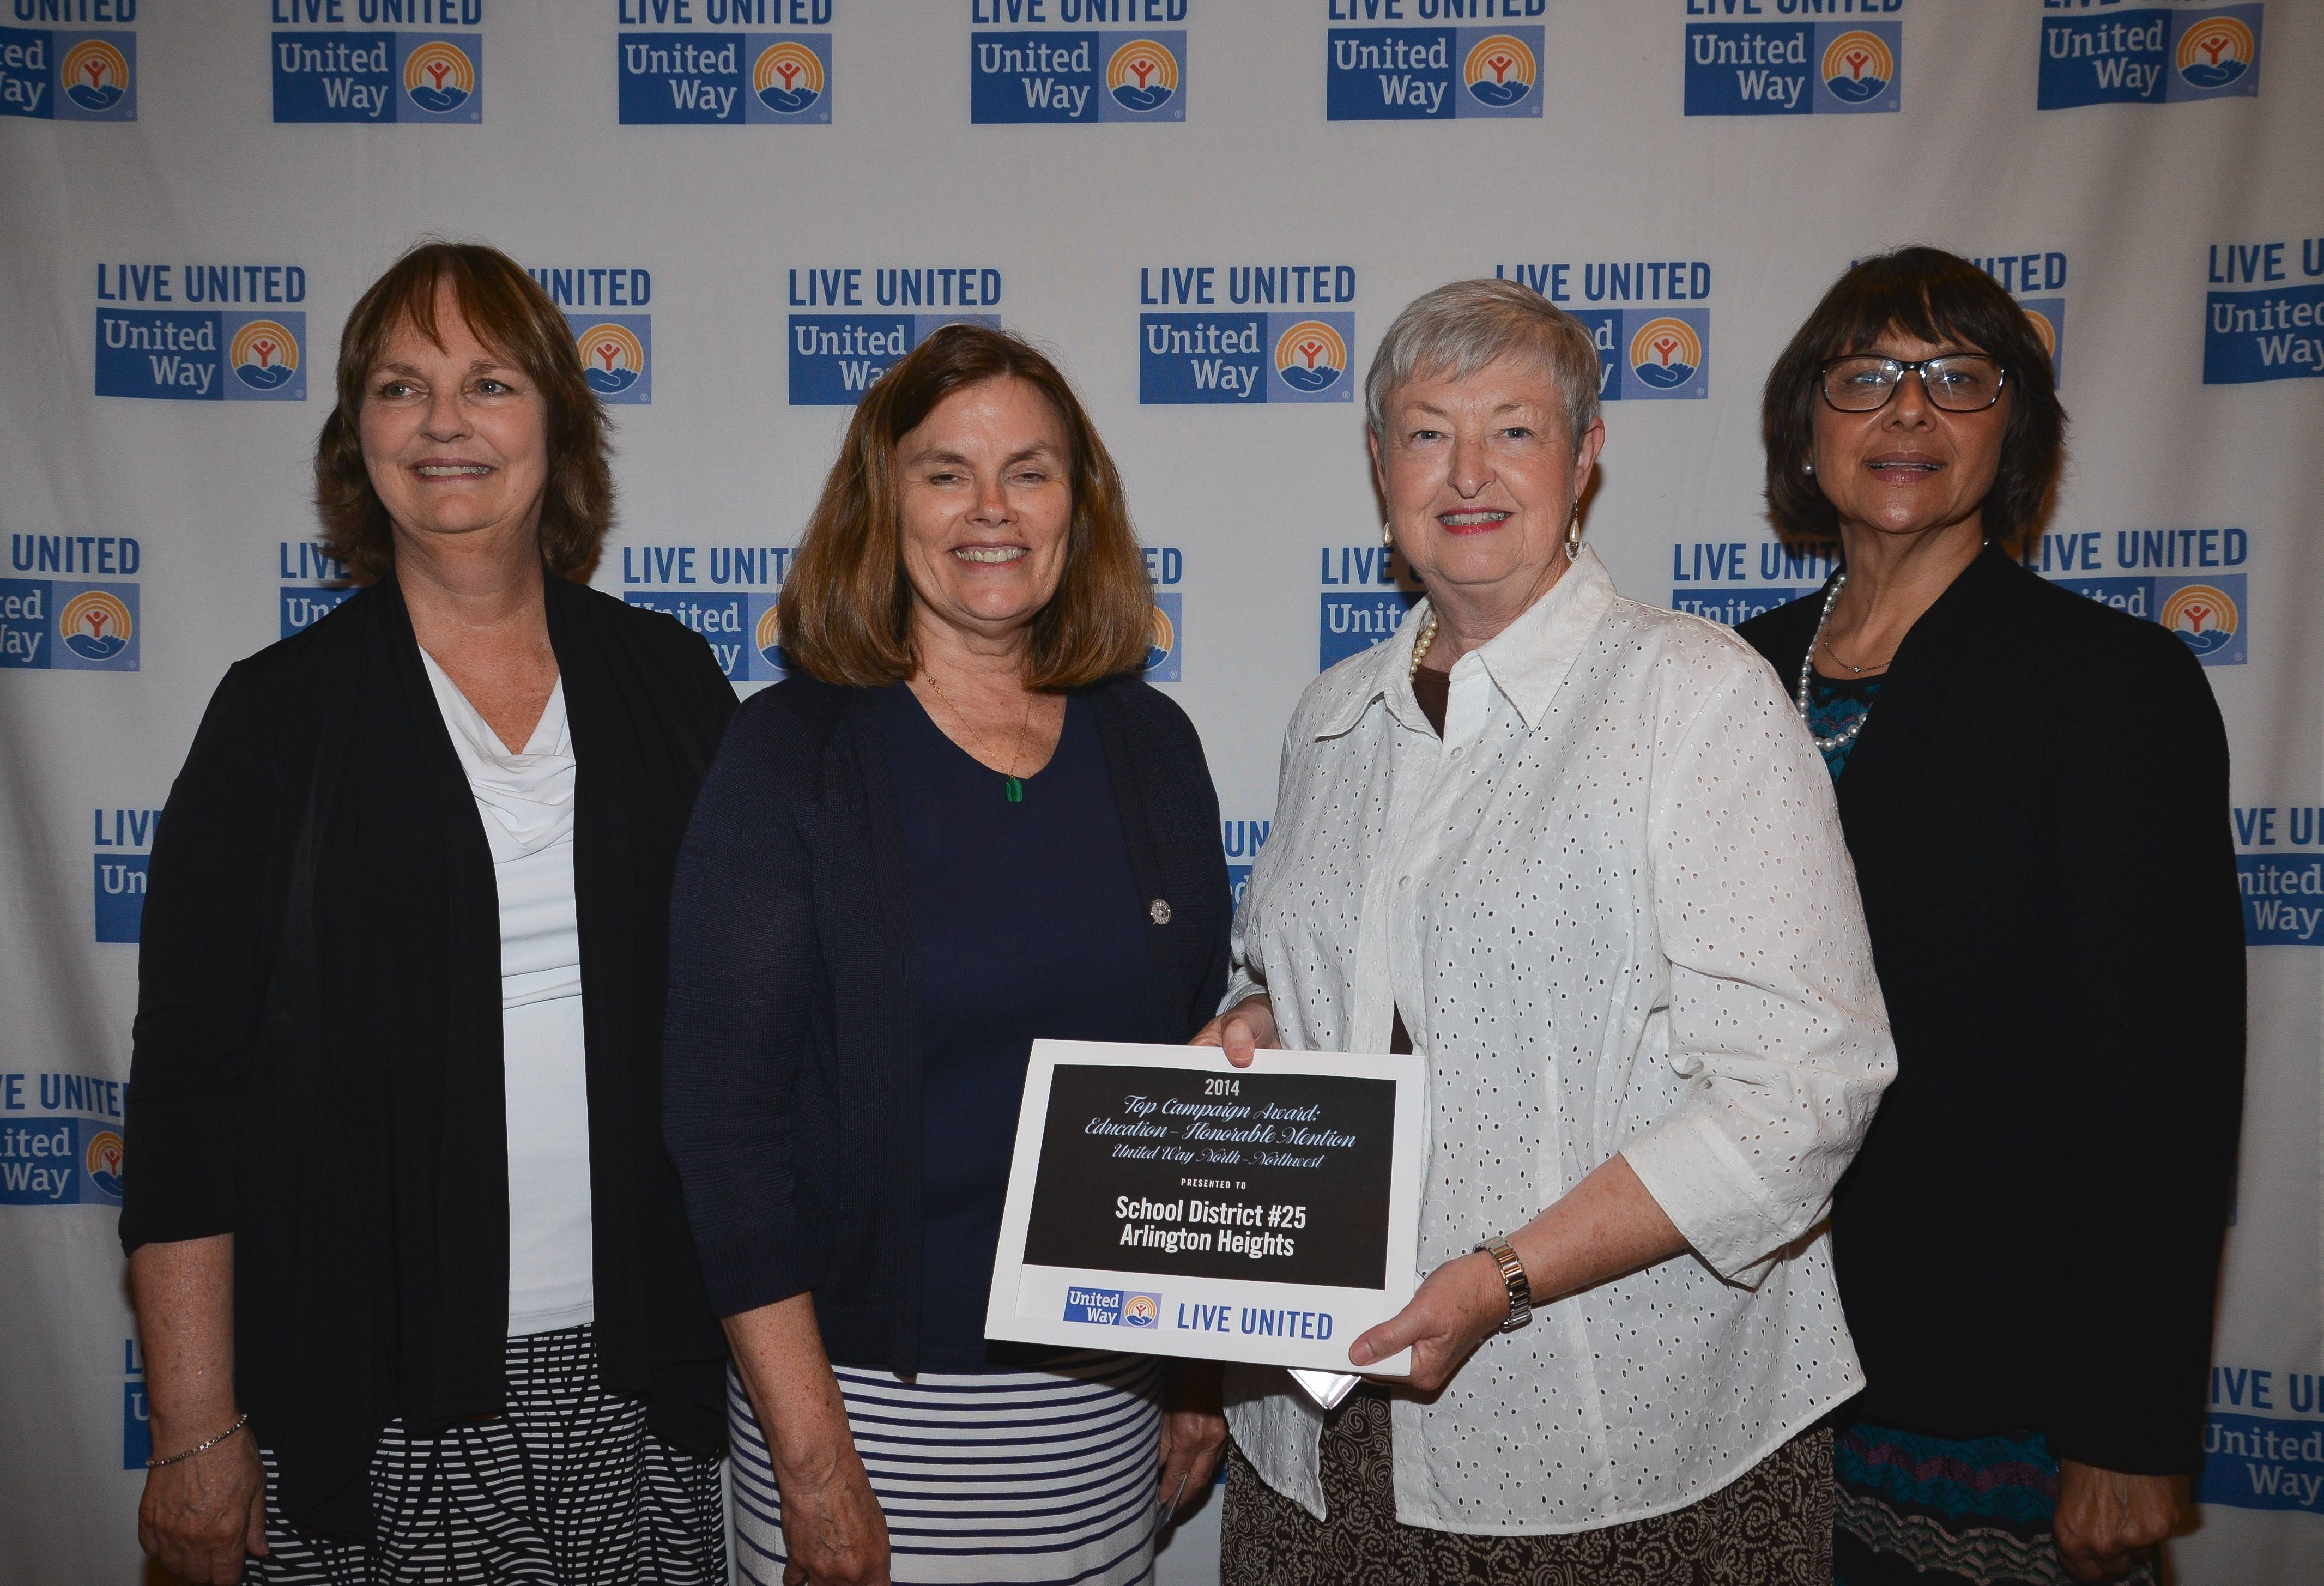 Sarah Jerome, retiring superintendent of Arlington Heights District 25 (in white), and Debra Williams, administrative assistant to the superintendent, pose with their award, flanked by Marcia McMahon, far left, and Deborah Price, far right.